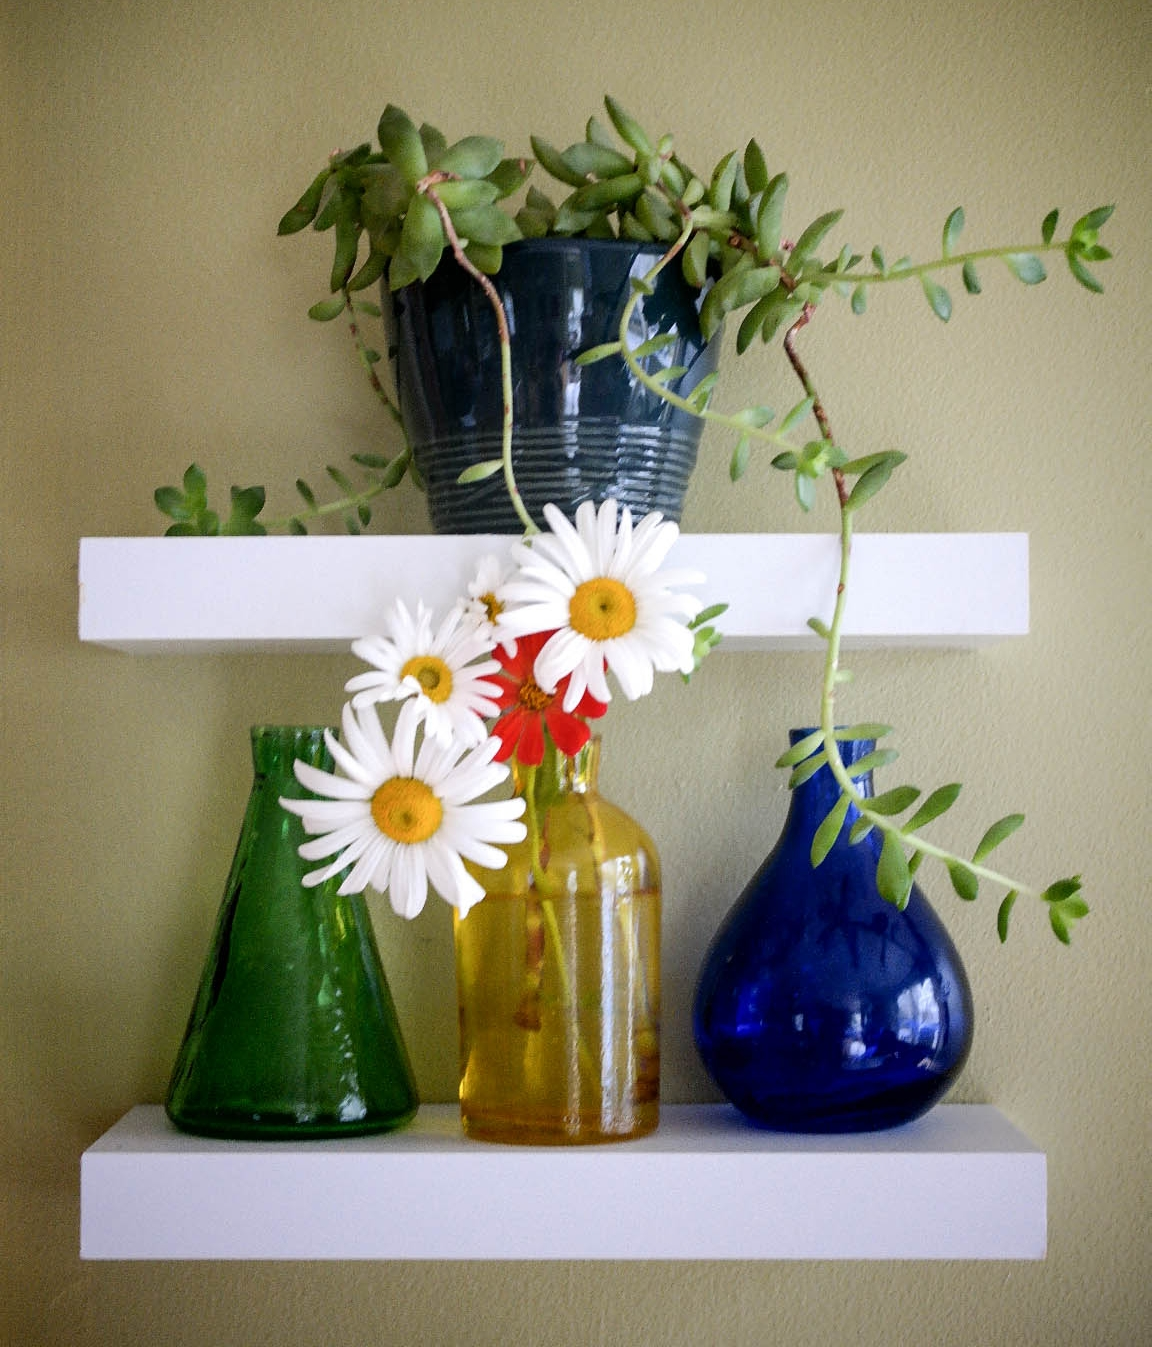 Plant Shelf Daisies (1 of 1).JPG